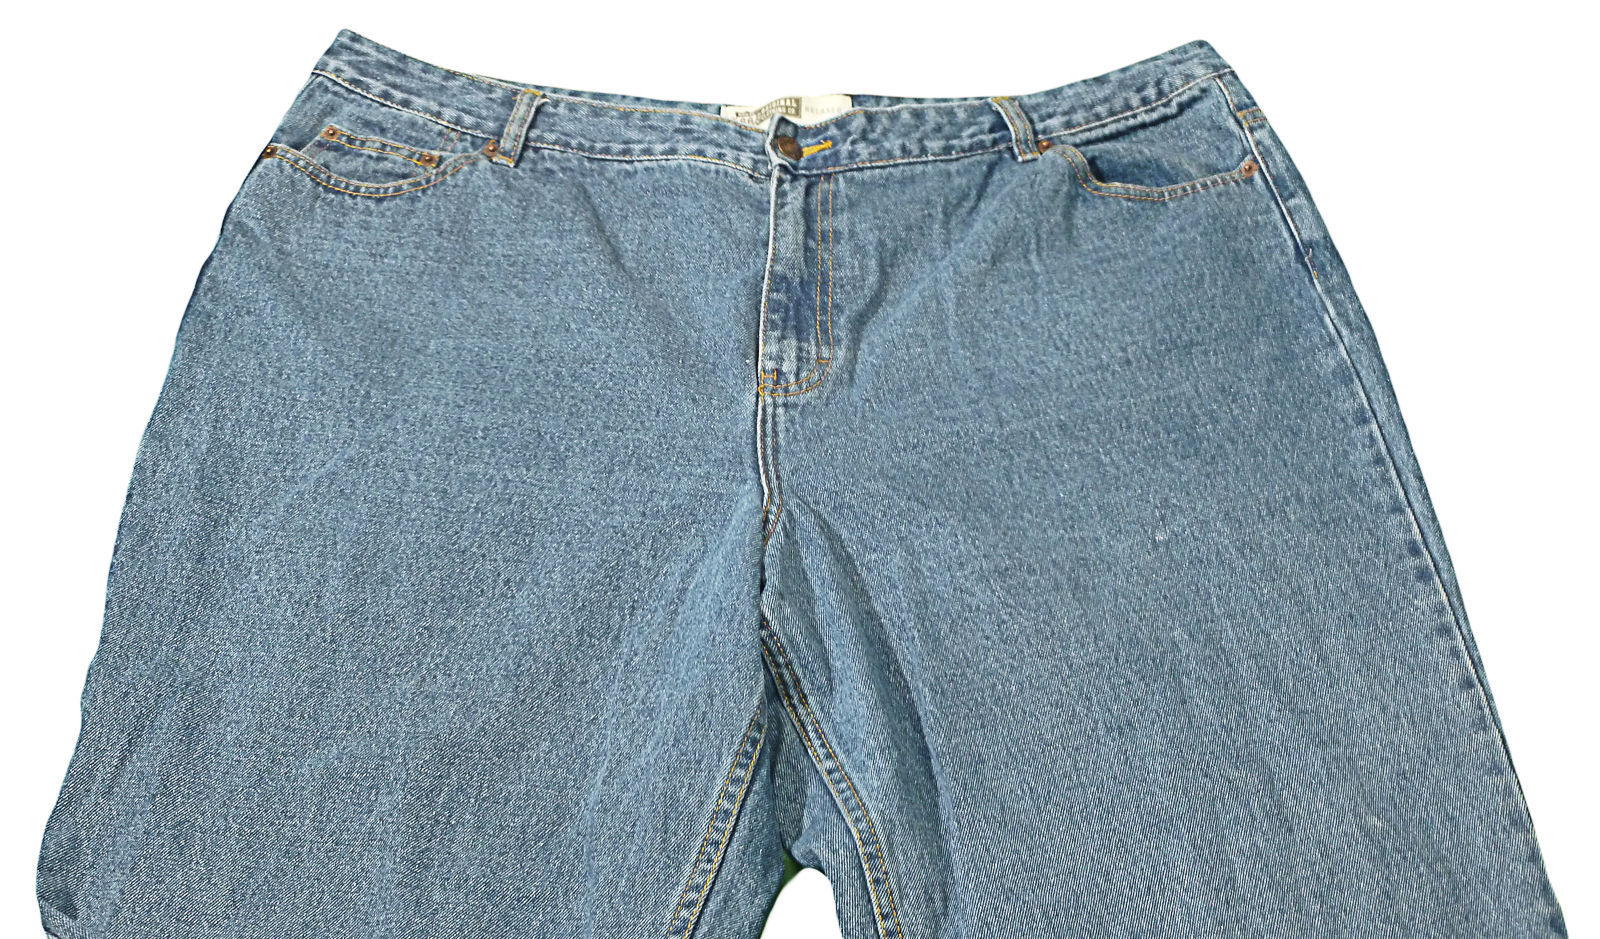 Womens Blue ROUTE 66 Relaxed Fit Denim Jeans 24S X 28 3/4 100% Cotton